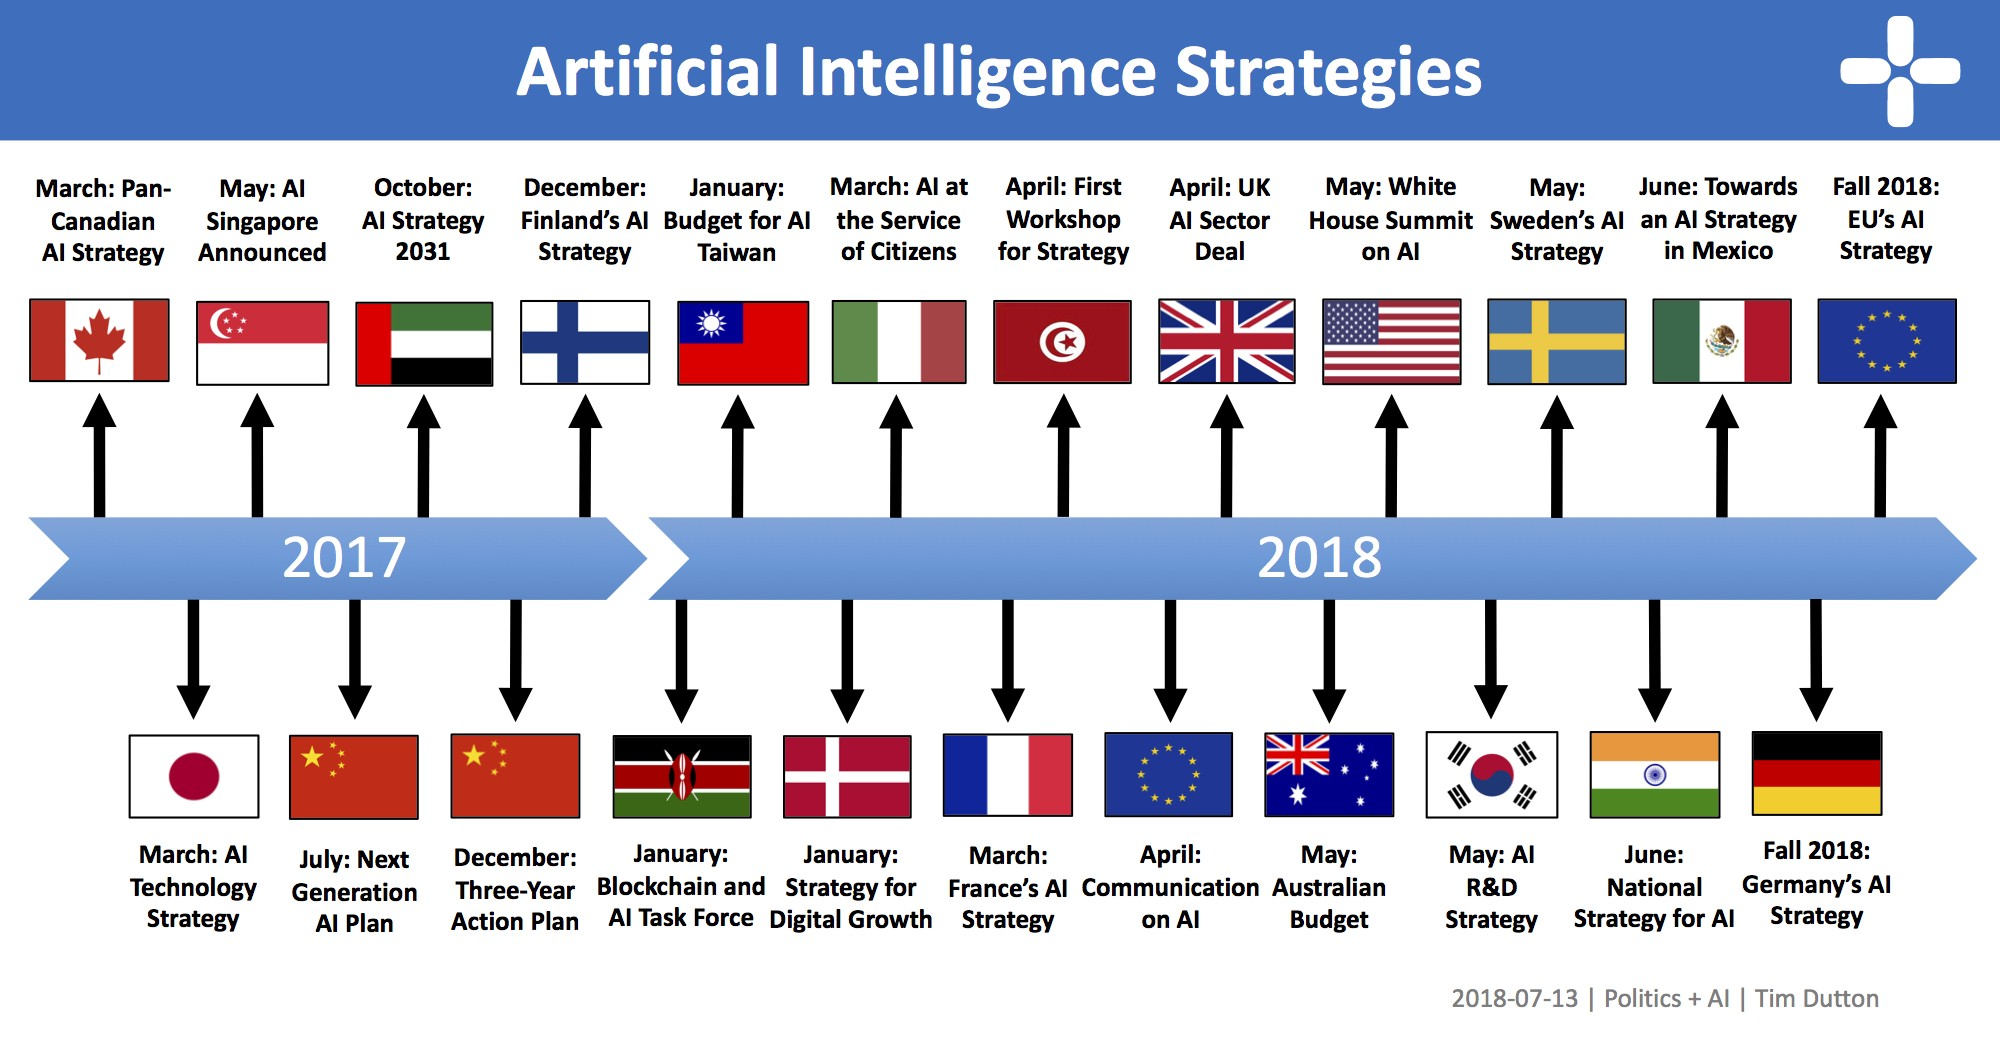 an overview of national ai strategies politics ai medium